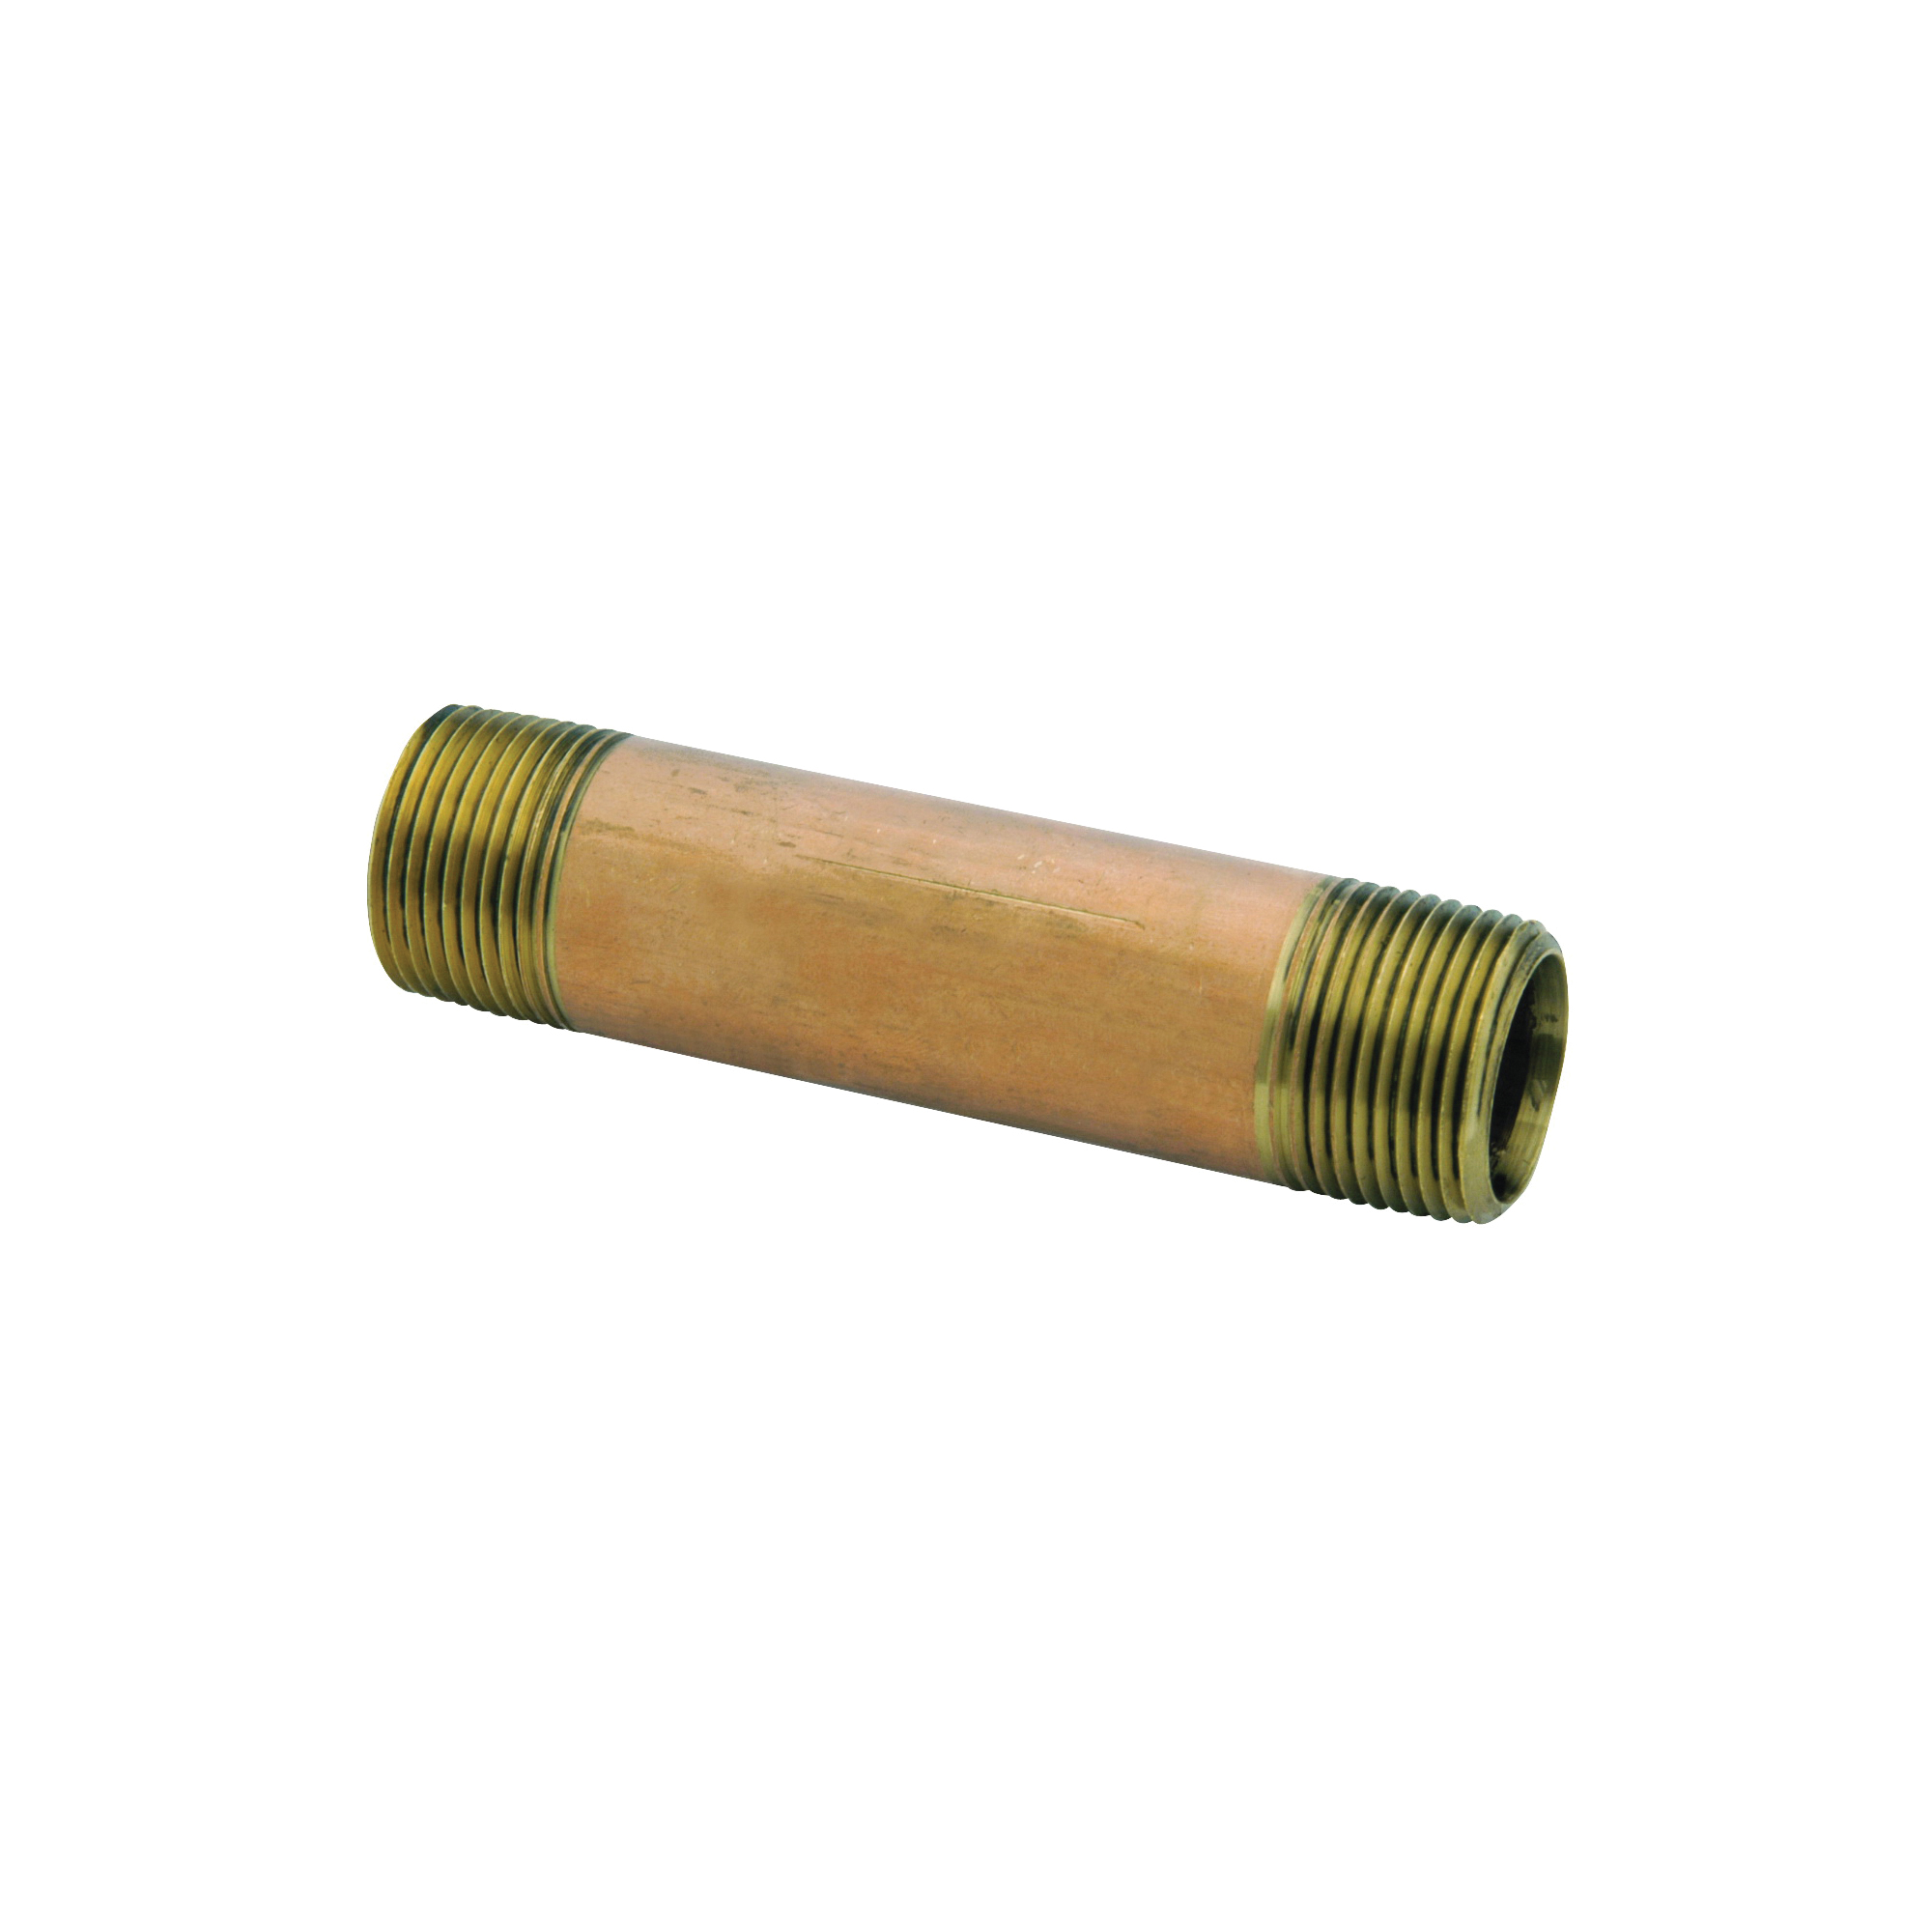 Picture of Anderson Metals 38300-0625 Pipe Nipple, 3/8 in, NPT, Brass, 890 psi Pressure, 2-1/2 in L